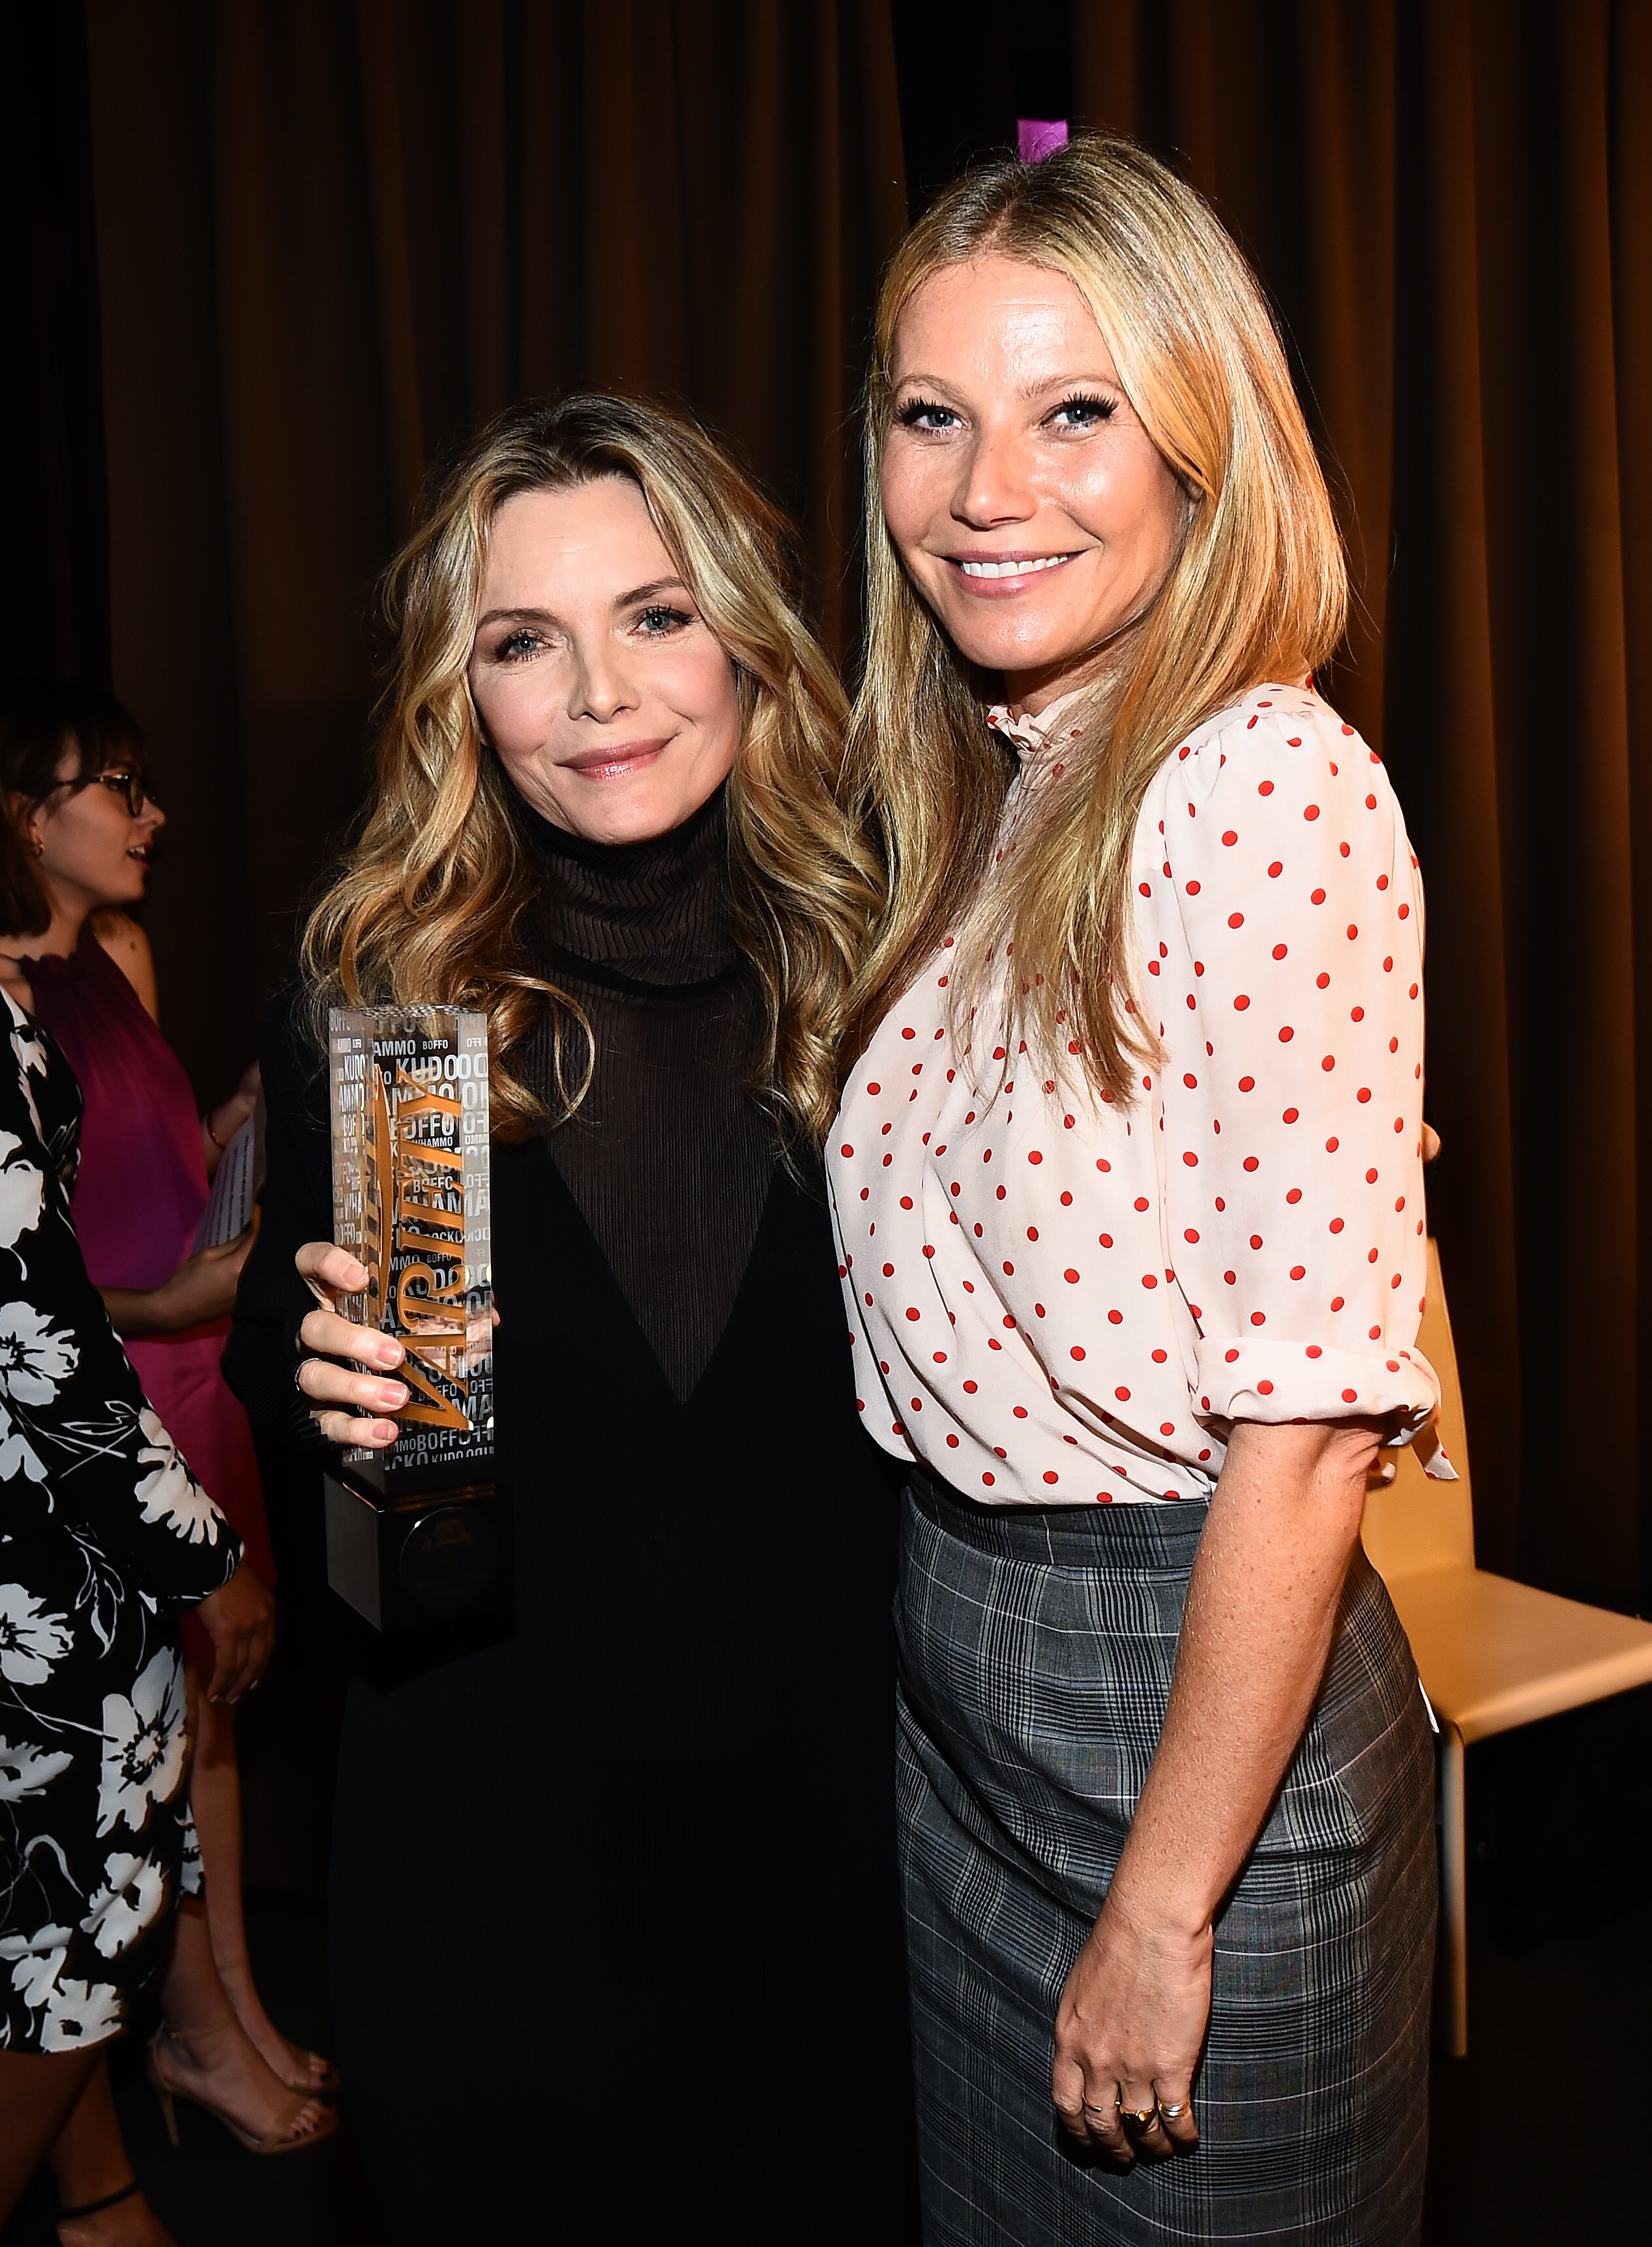 Michelle Pfeiffer and Gwyneth PaltrowVariety's Power of Women Presented by Lifetime, Inside, Los Angeles, USA - 13 Oct 2017